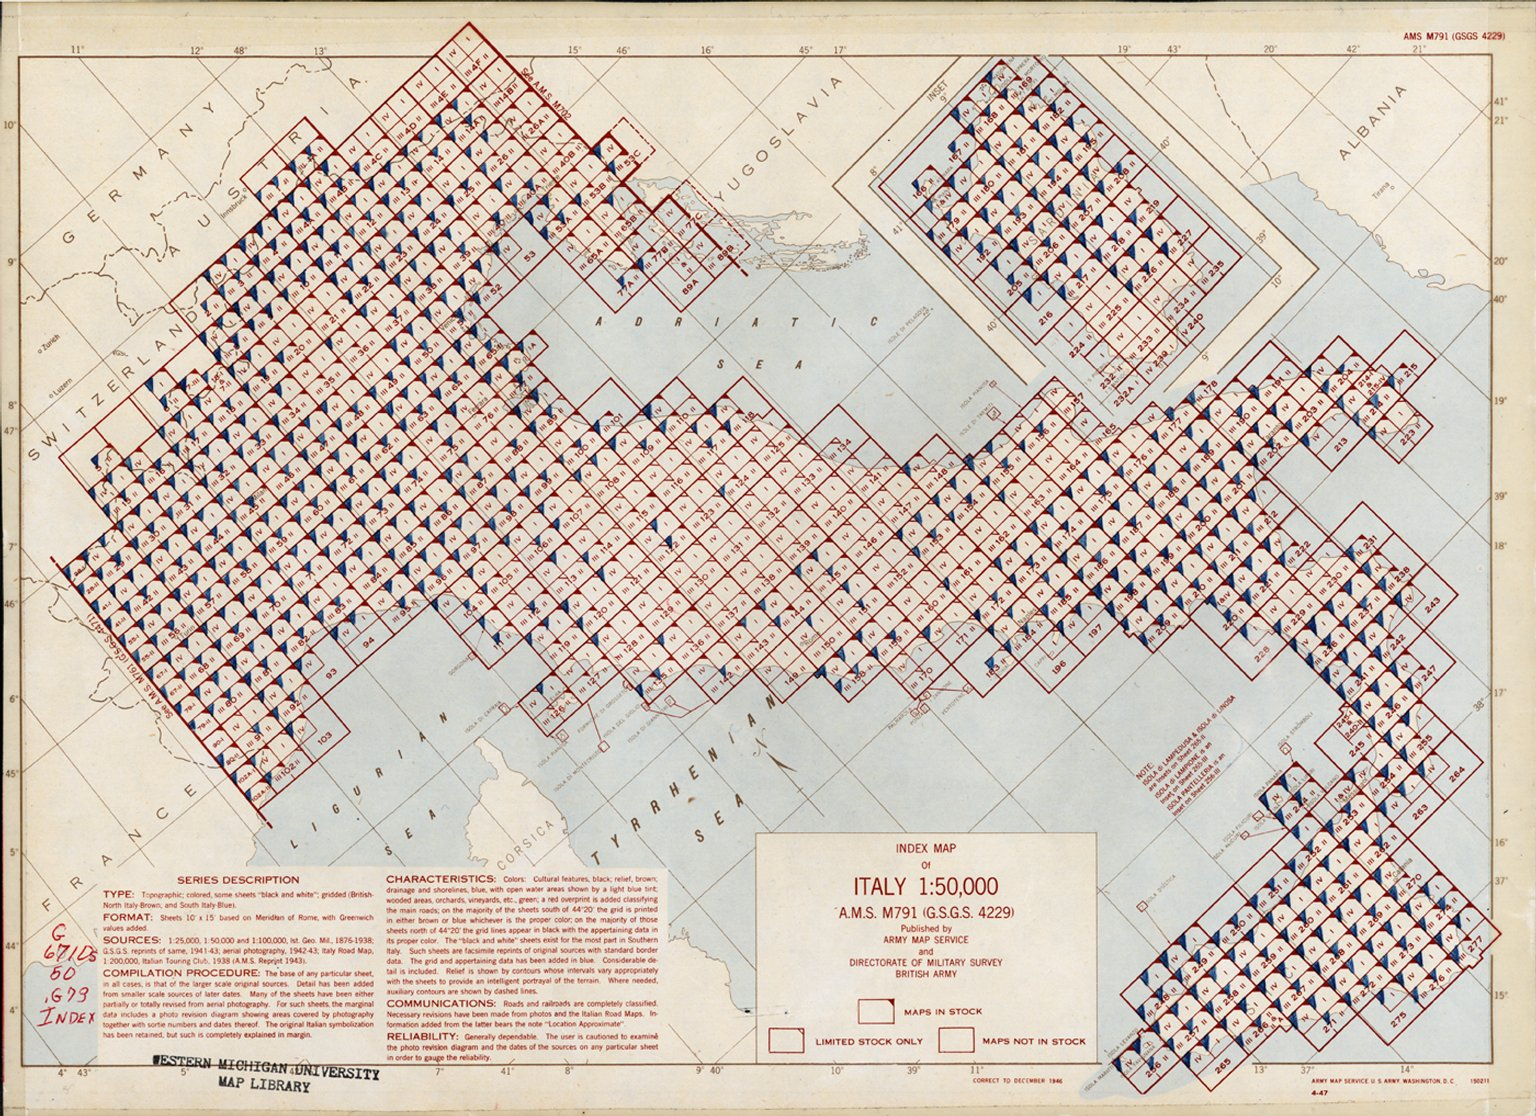 Index Map of Italy 1:50,000